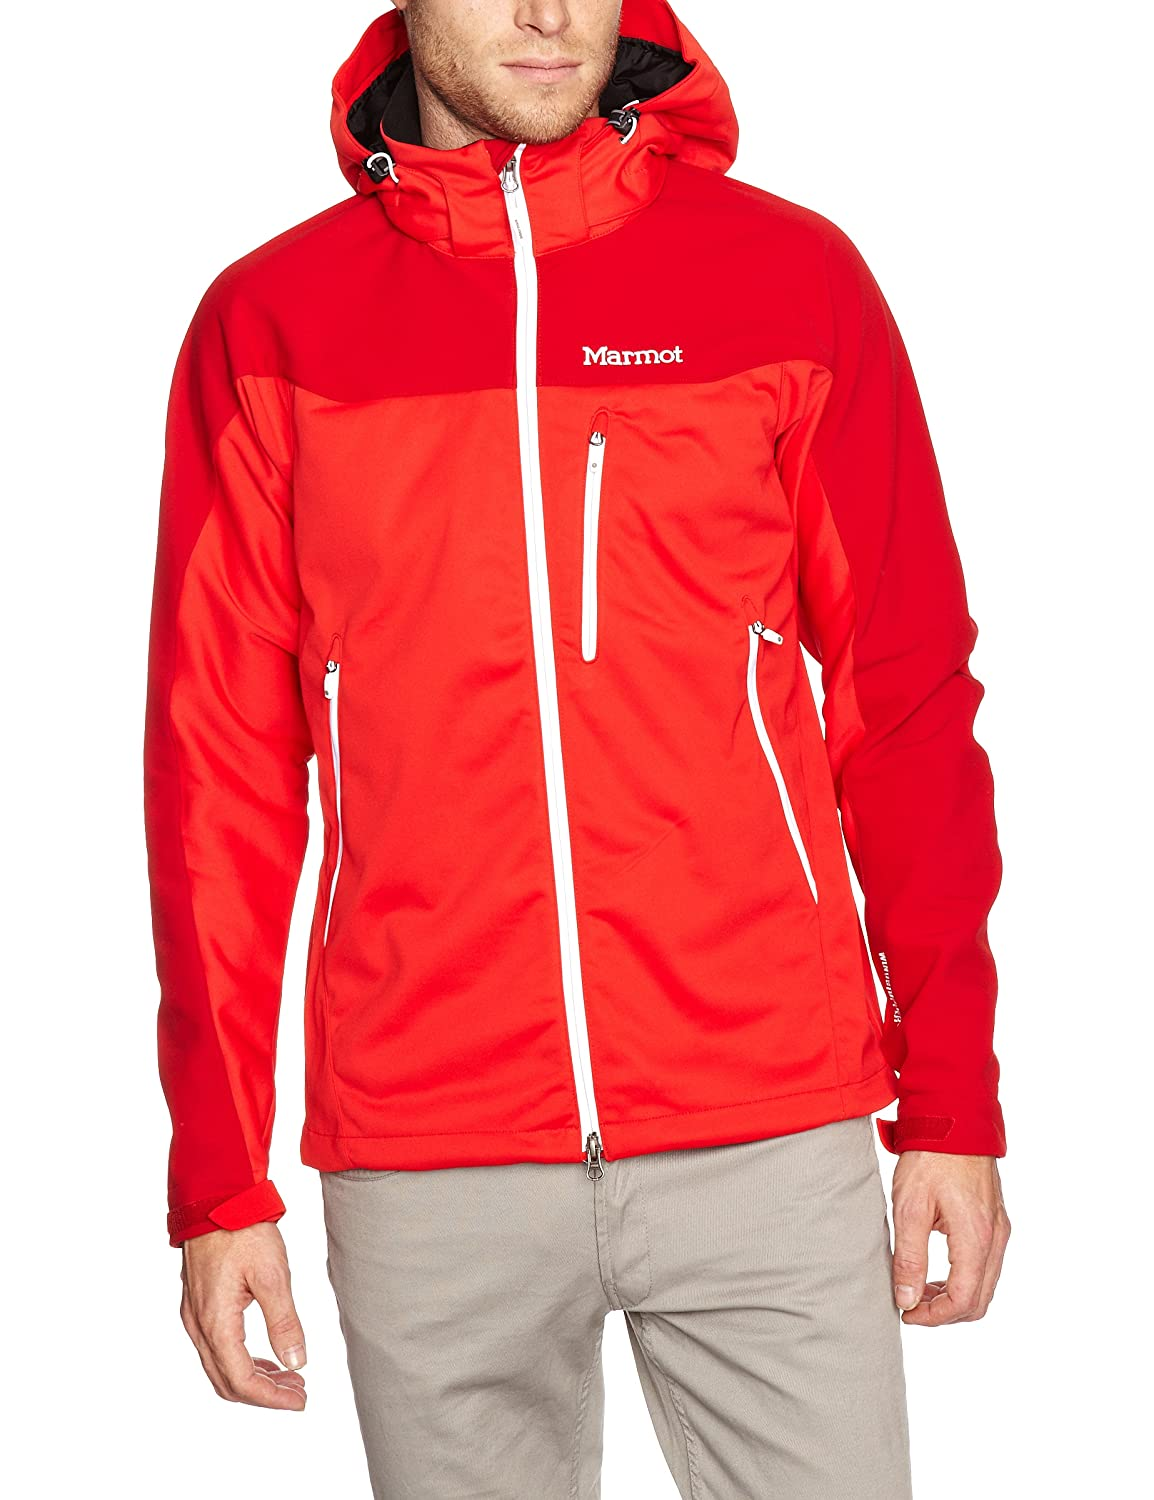 Marmot Herren Softshell Jacke Super Hero